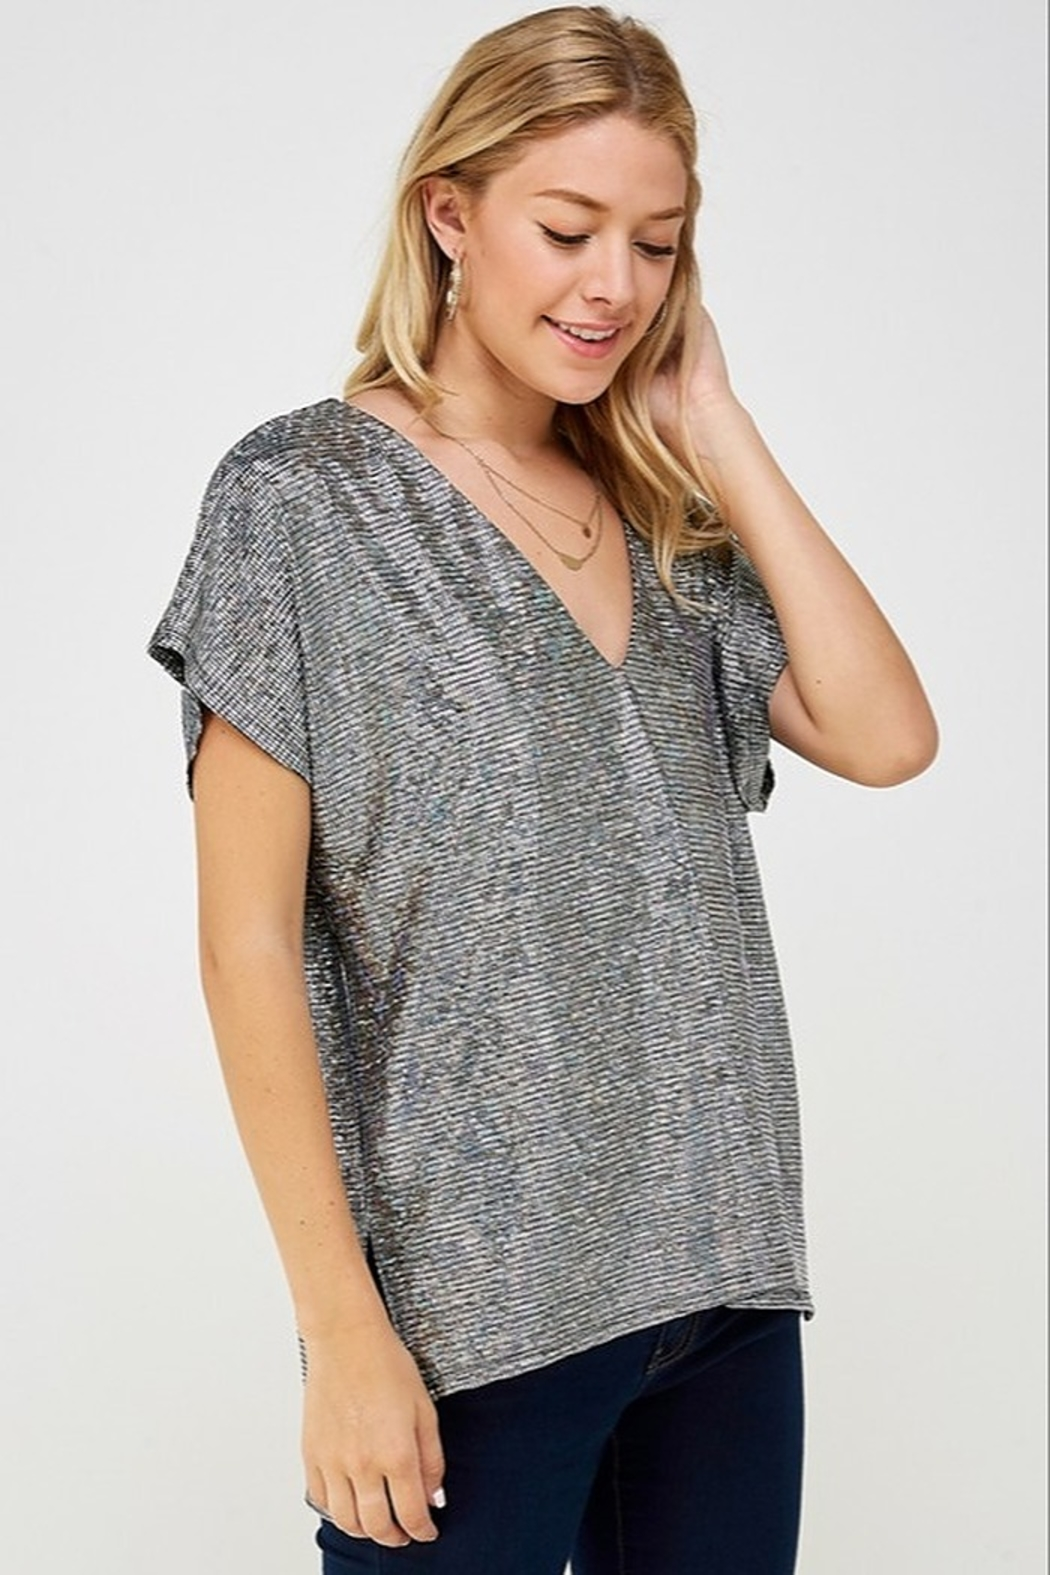 Caramela Holographic V-Neck Top - Front Full Image